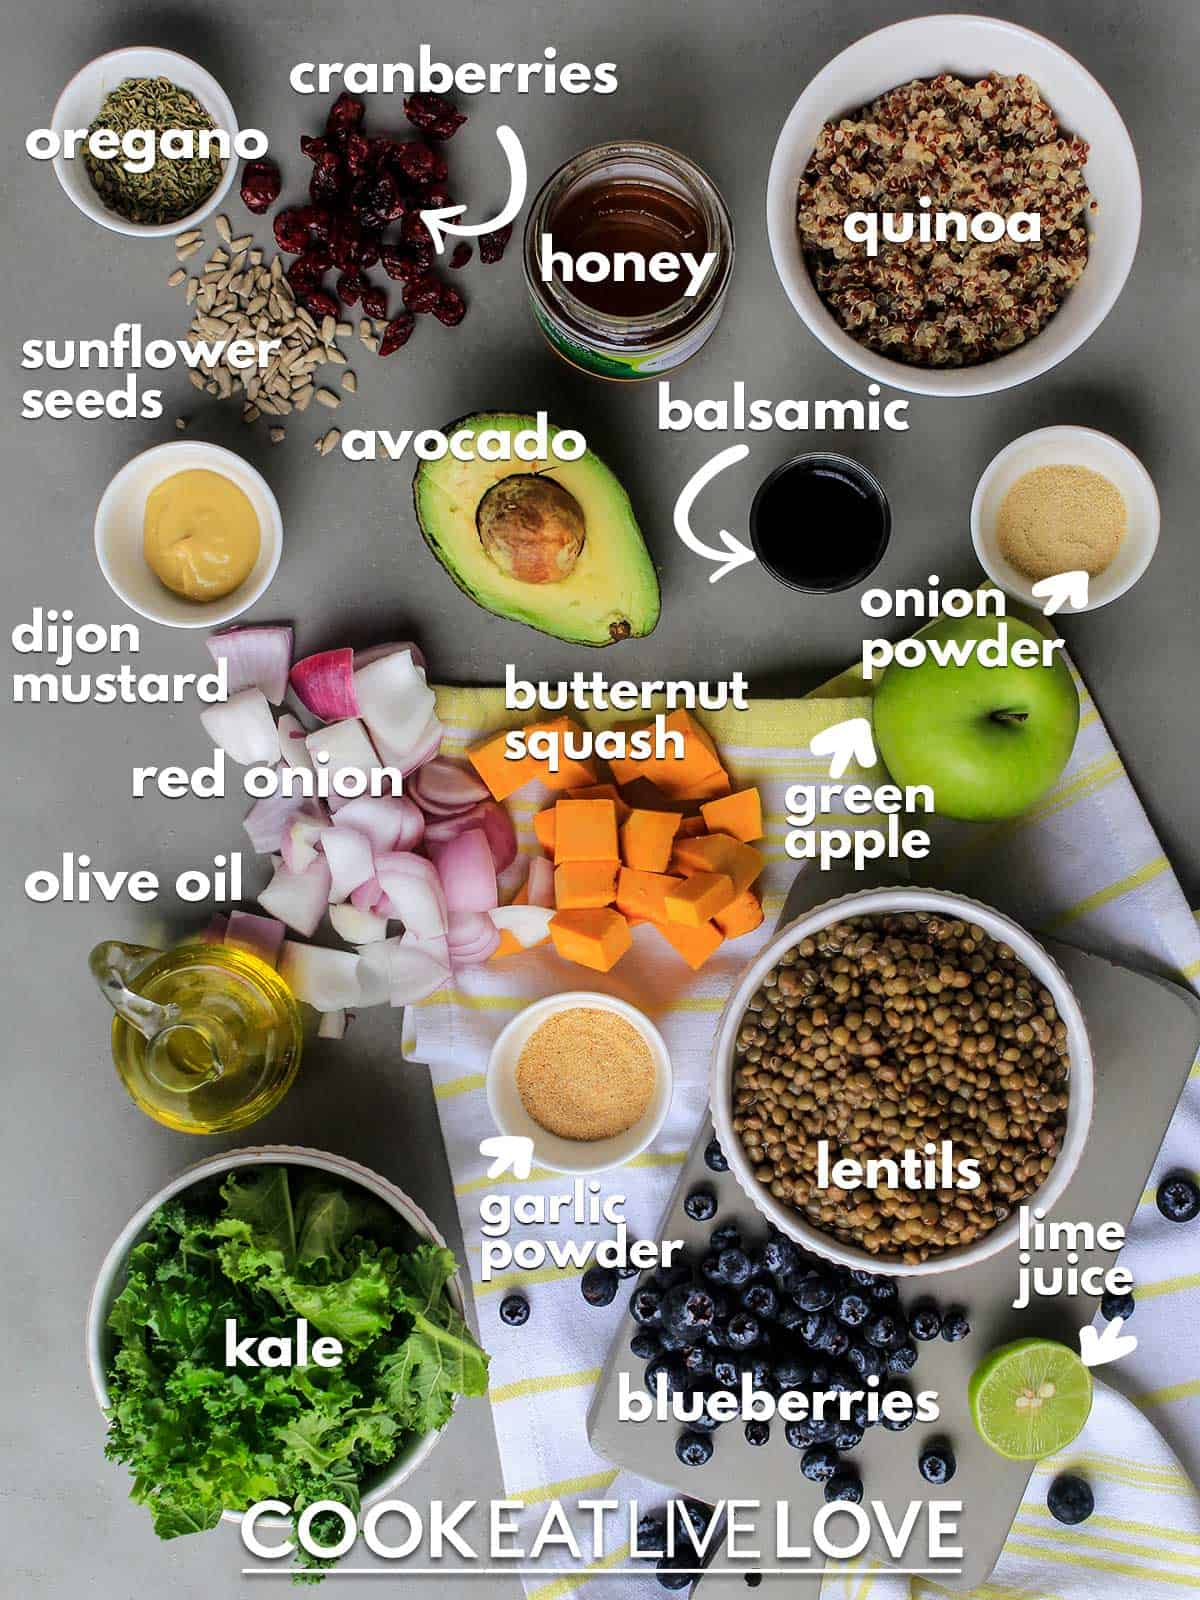 Ingredients to make nourish bowl on the table with text labels